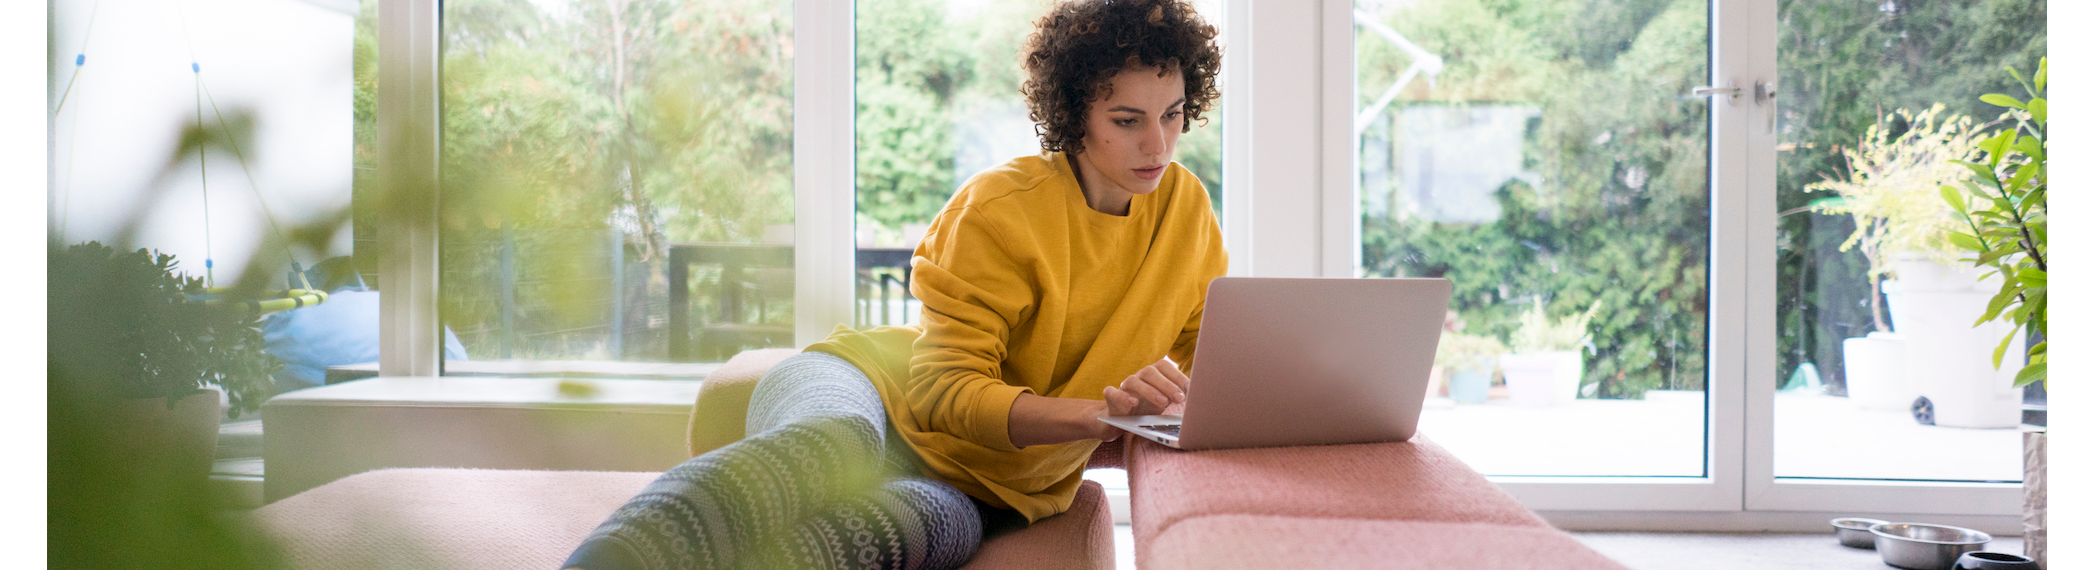 Woman sitting in living room, searching with laptop